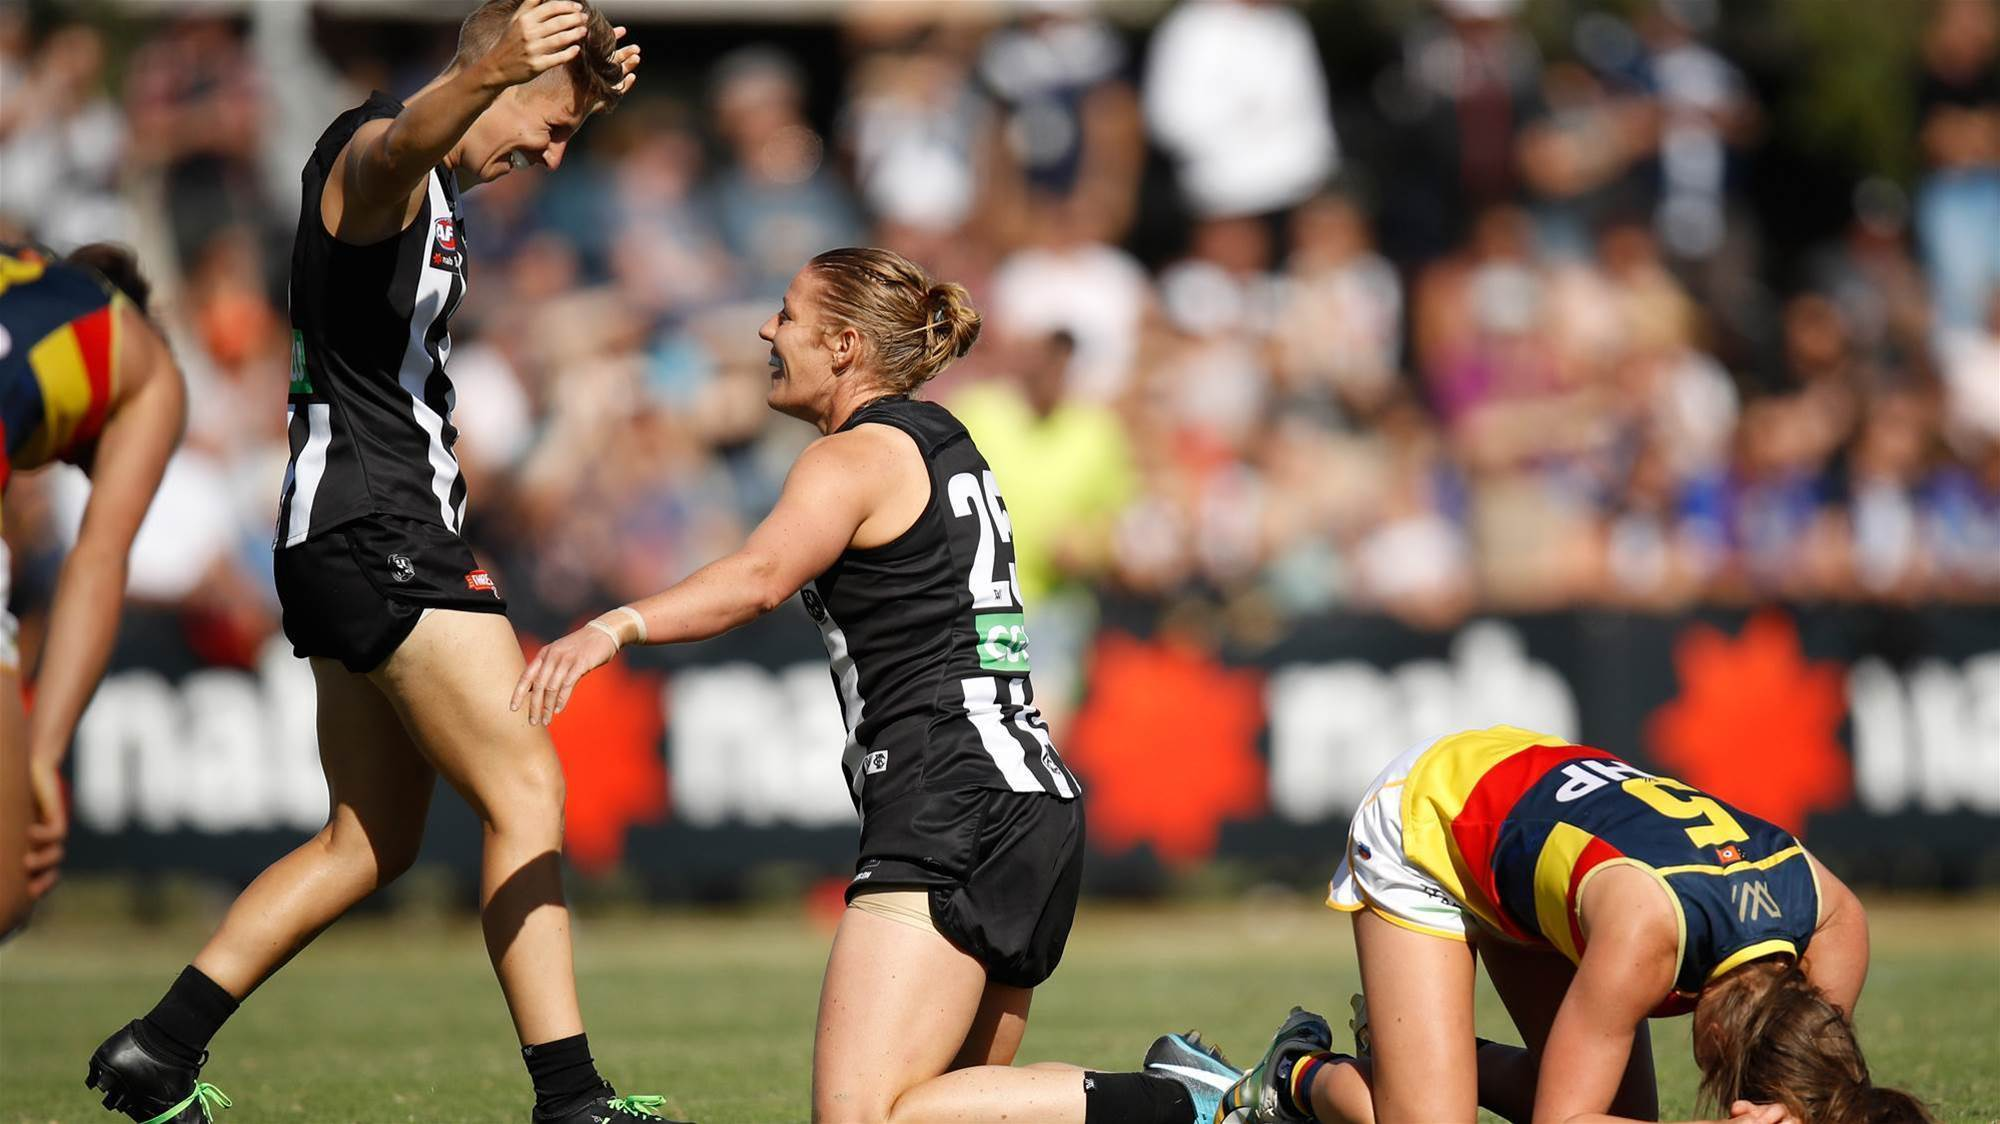 AFLW players outraged over proposed plans but nothing confirmed